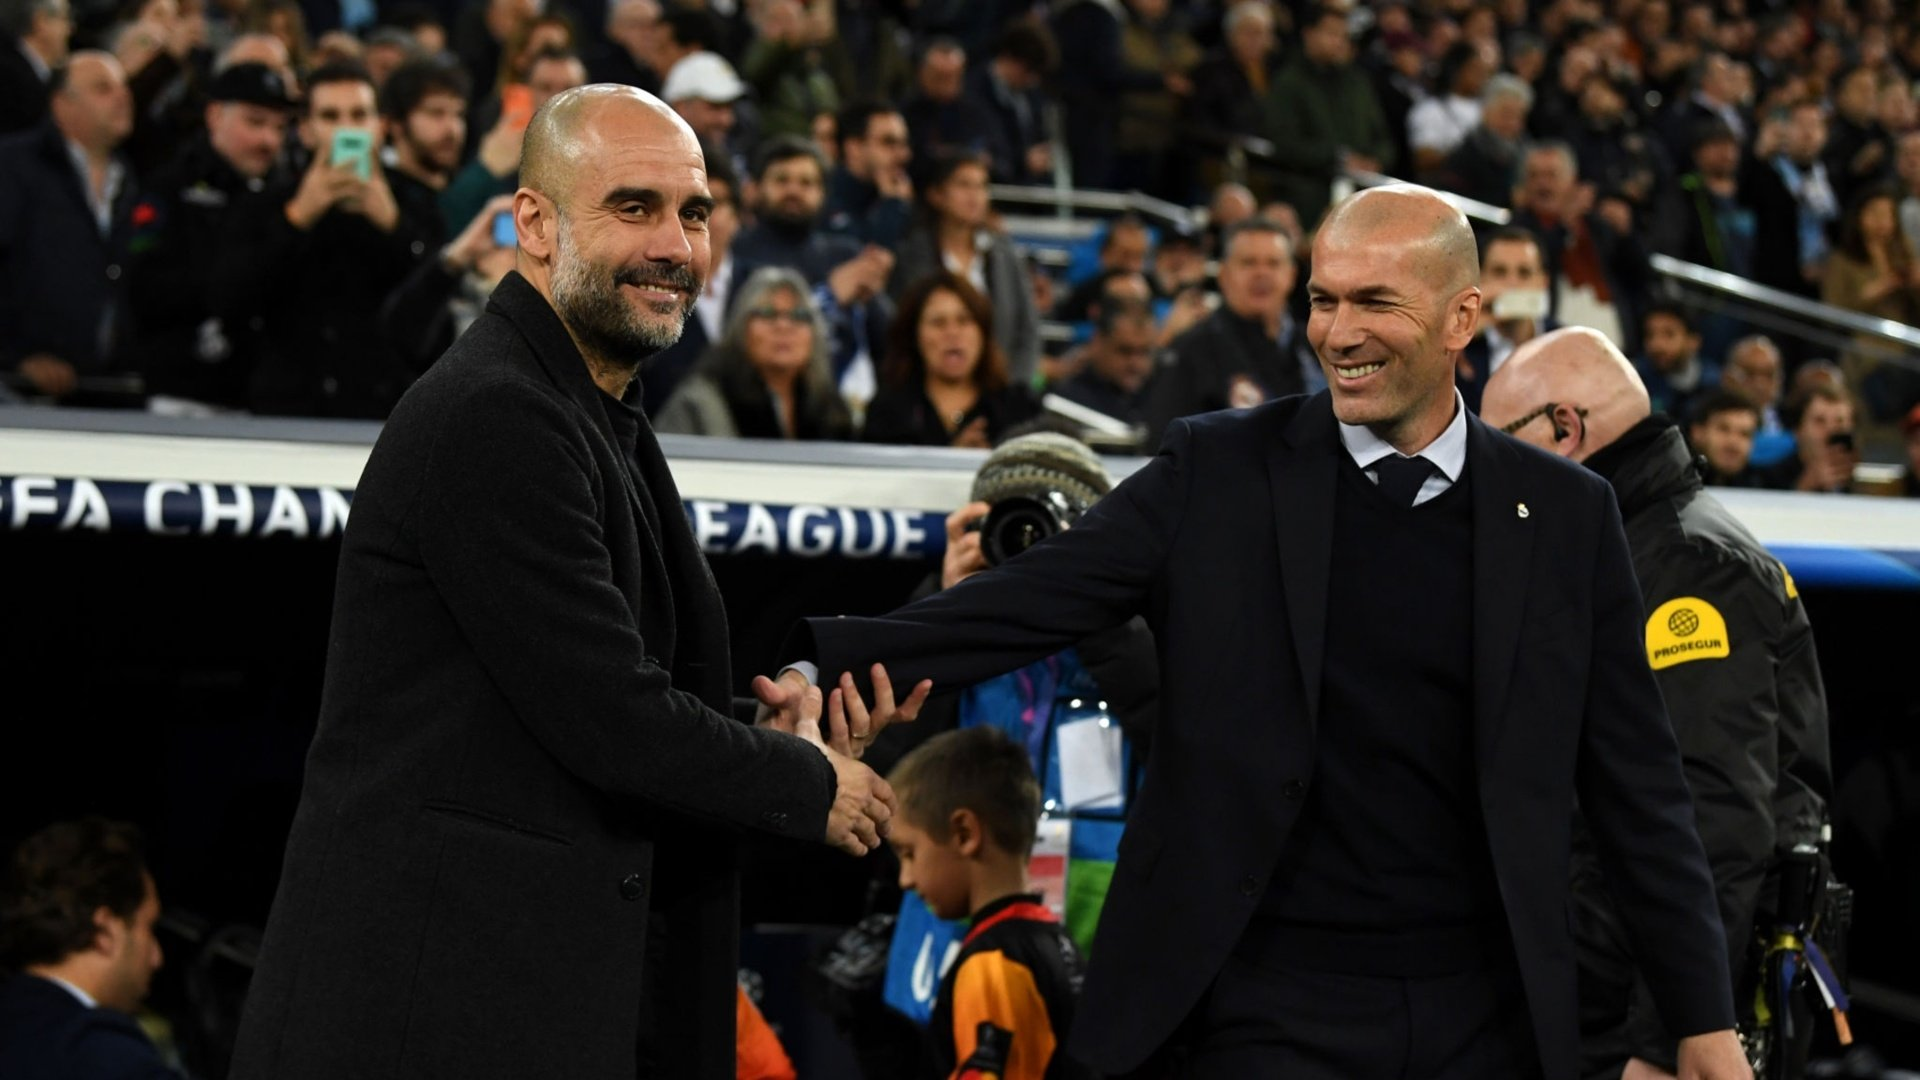 OFFICIAL: Manchester City vs Real Madrid postponed